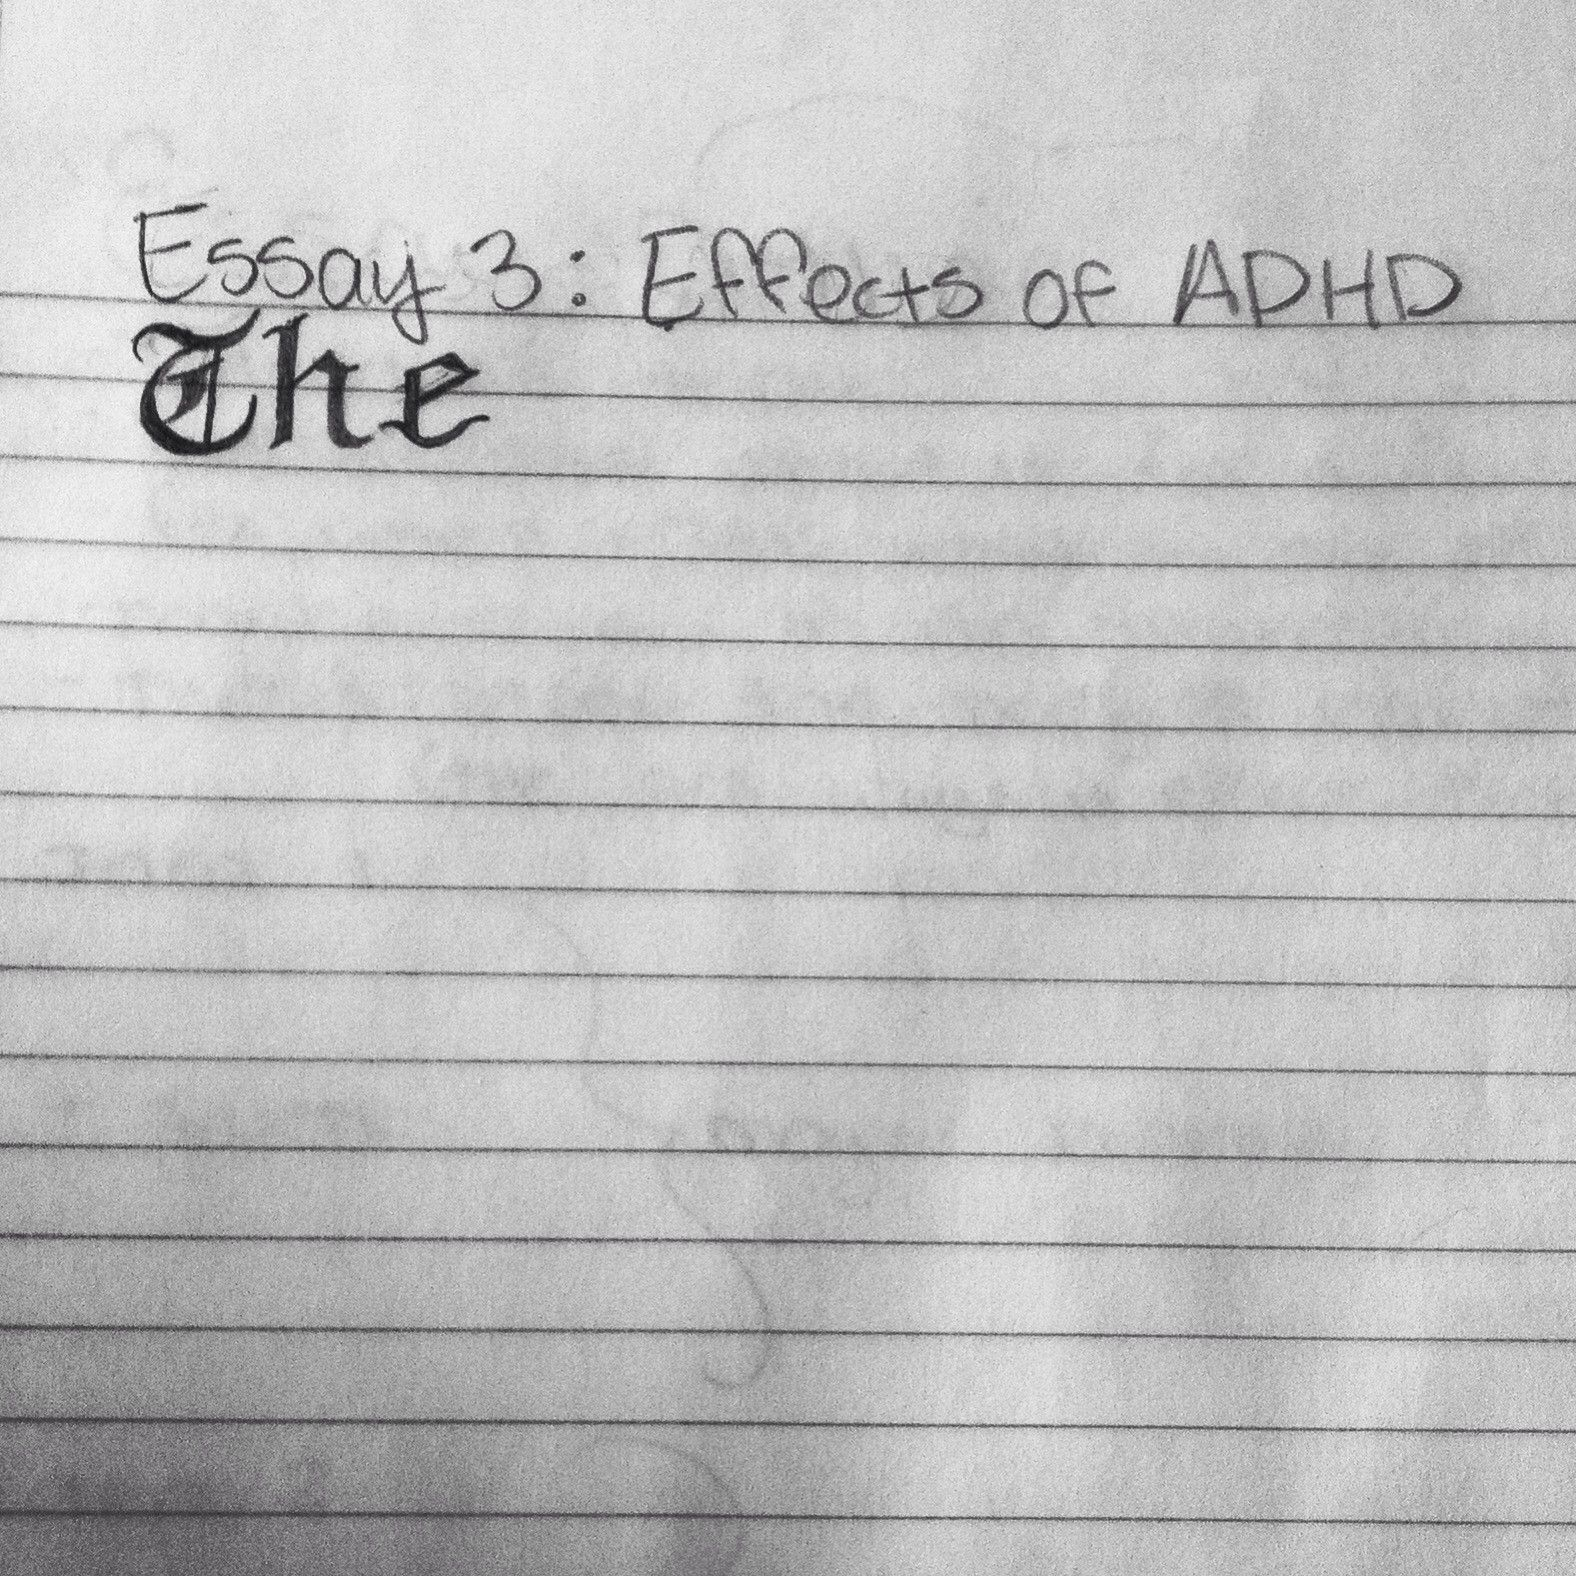 The effects of ADHD  http://problemkidsblog.com/2014/09/11/adhd-anxiety-children-12-ways-can-help/